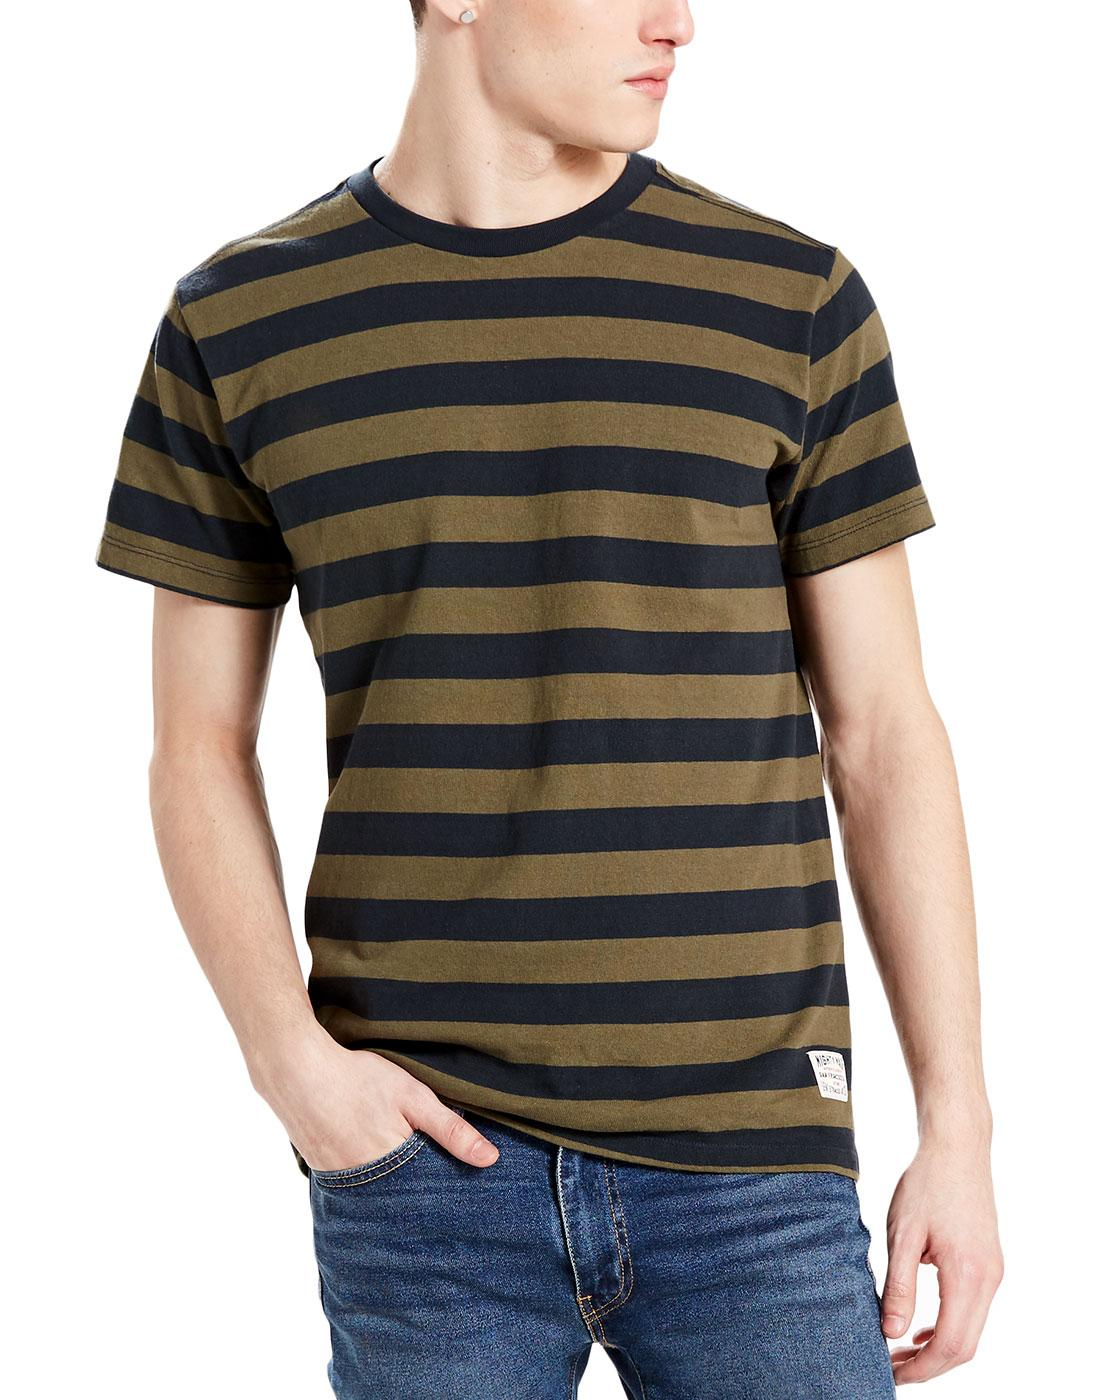 Mighty LEVI'S Retro Mod Bass Stripe T-Shirt OLIVE